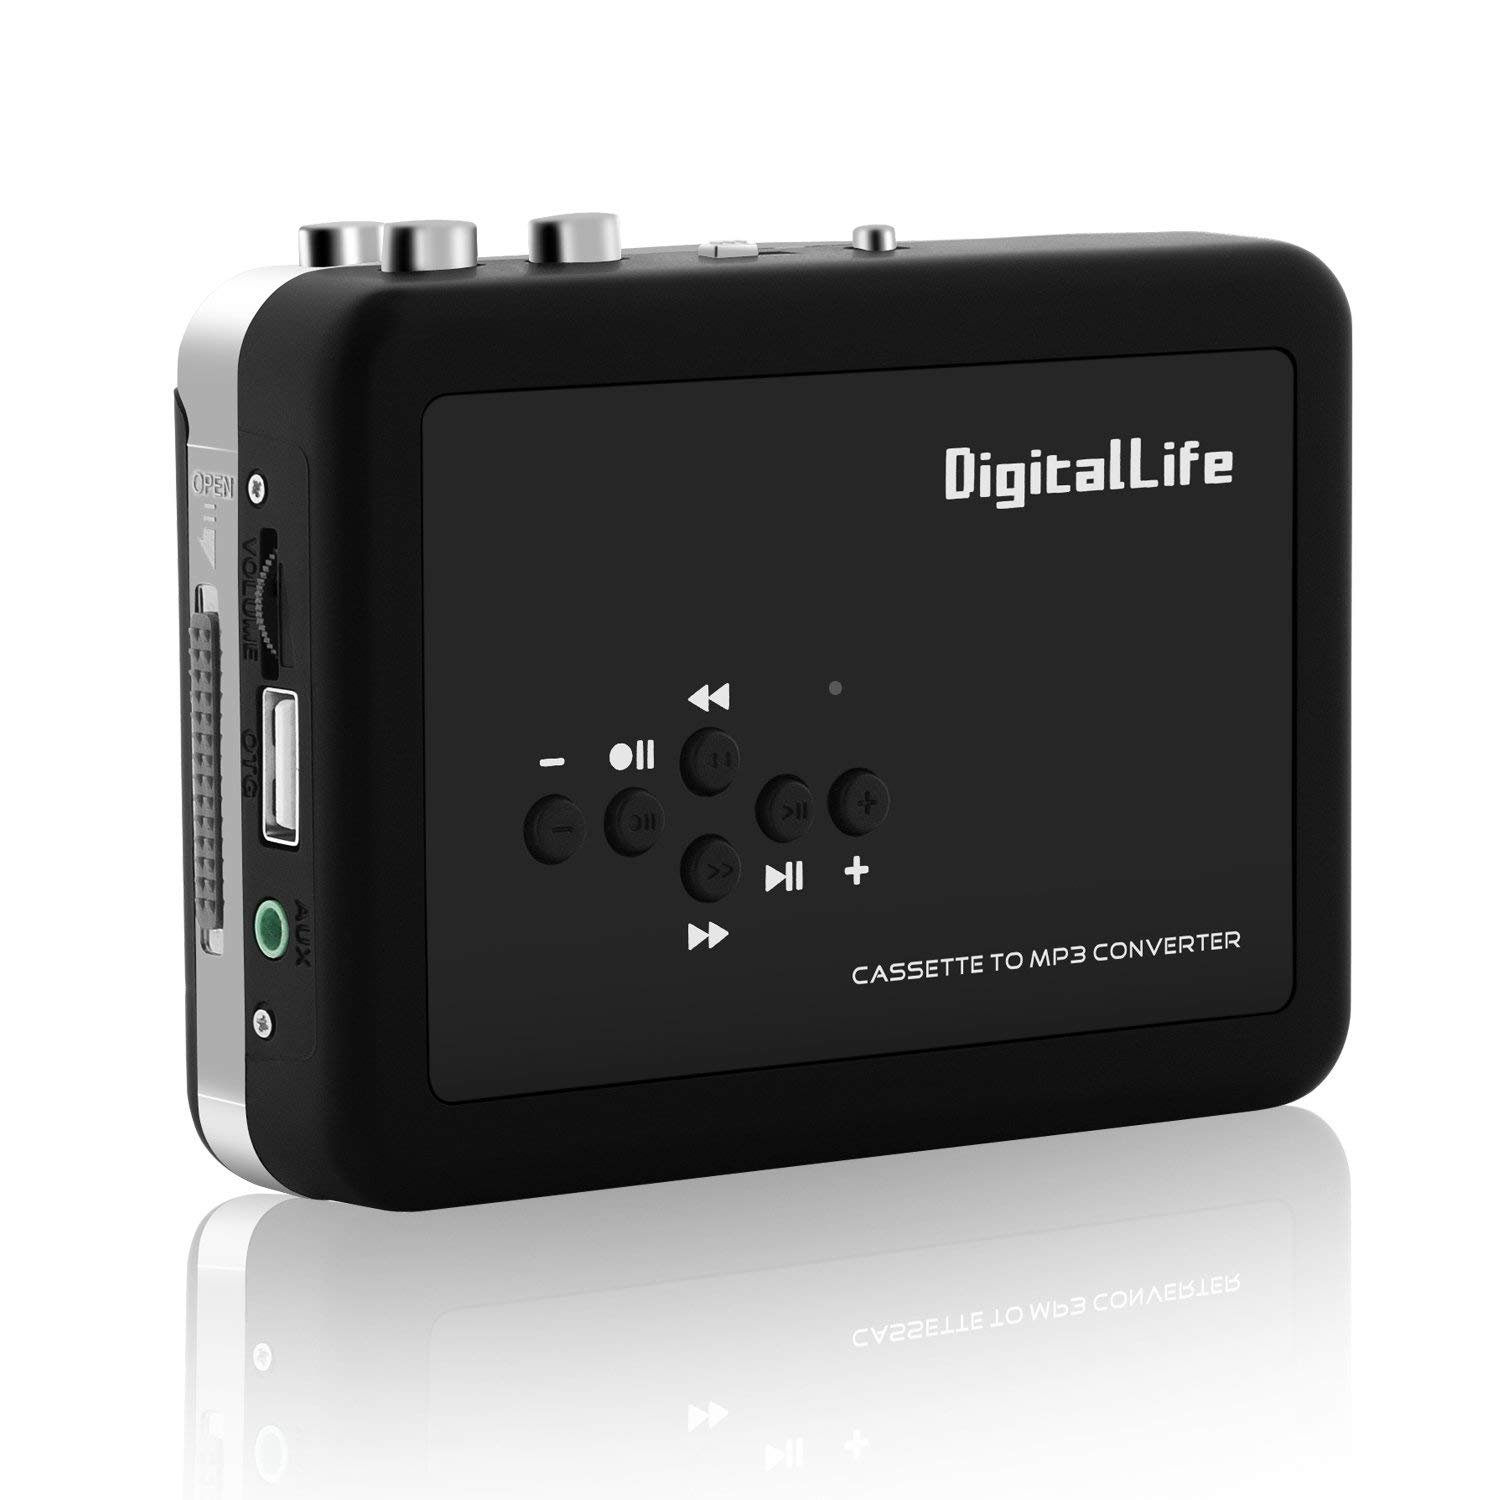 DigitalLife Lecteur Enregistreur Cassette Audio - Walkman Cassette MP3 Enregistreur - Convertisseur Cassette MP3 - Convertisseur Cassette Audio en MP3 (Pas de PC, Driver requis)